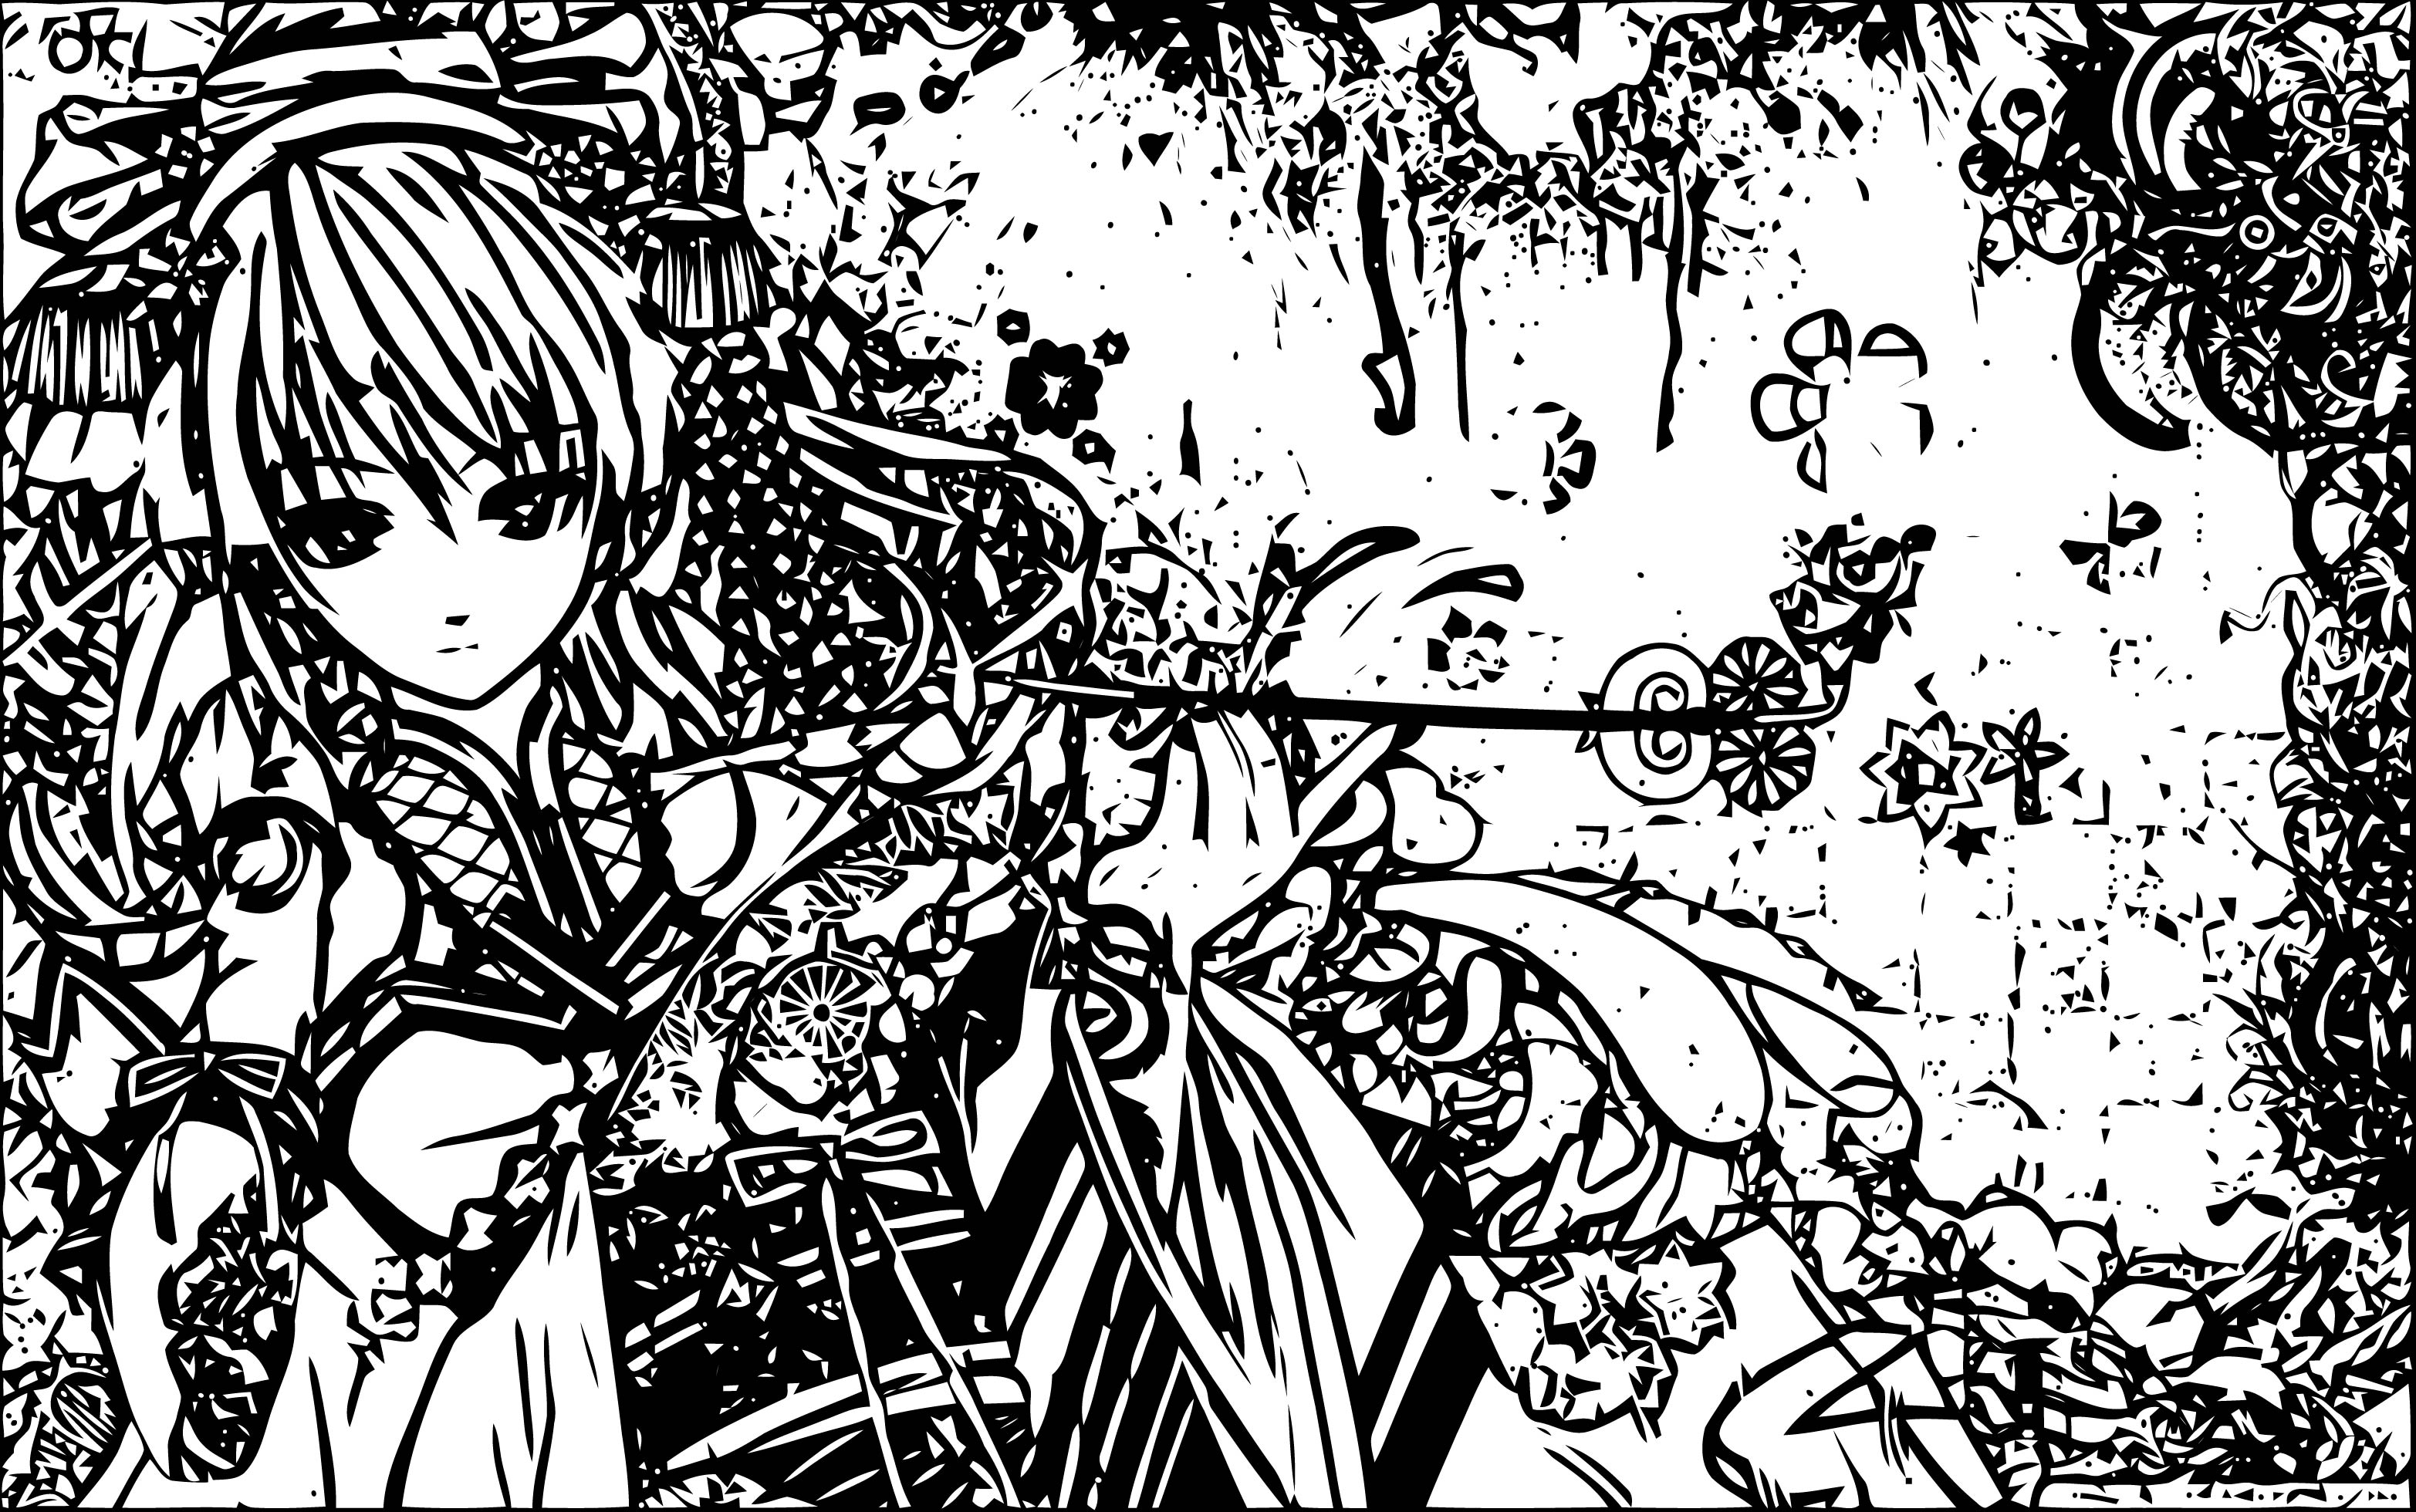 Manga Girl Mix Background Black Coloring Page